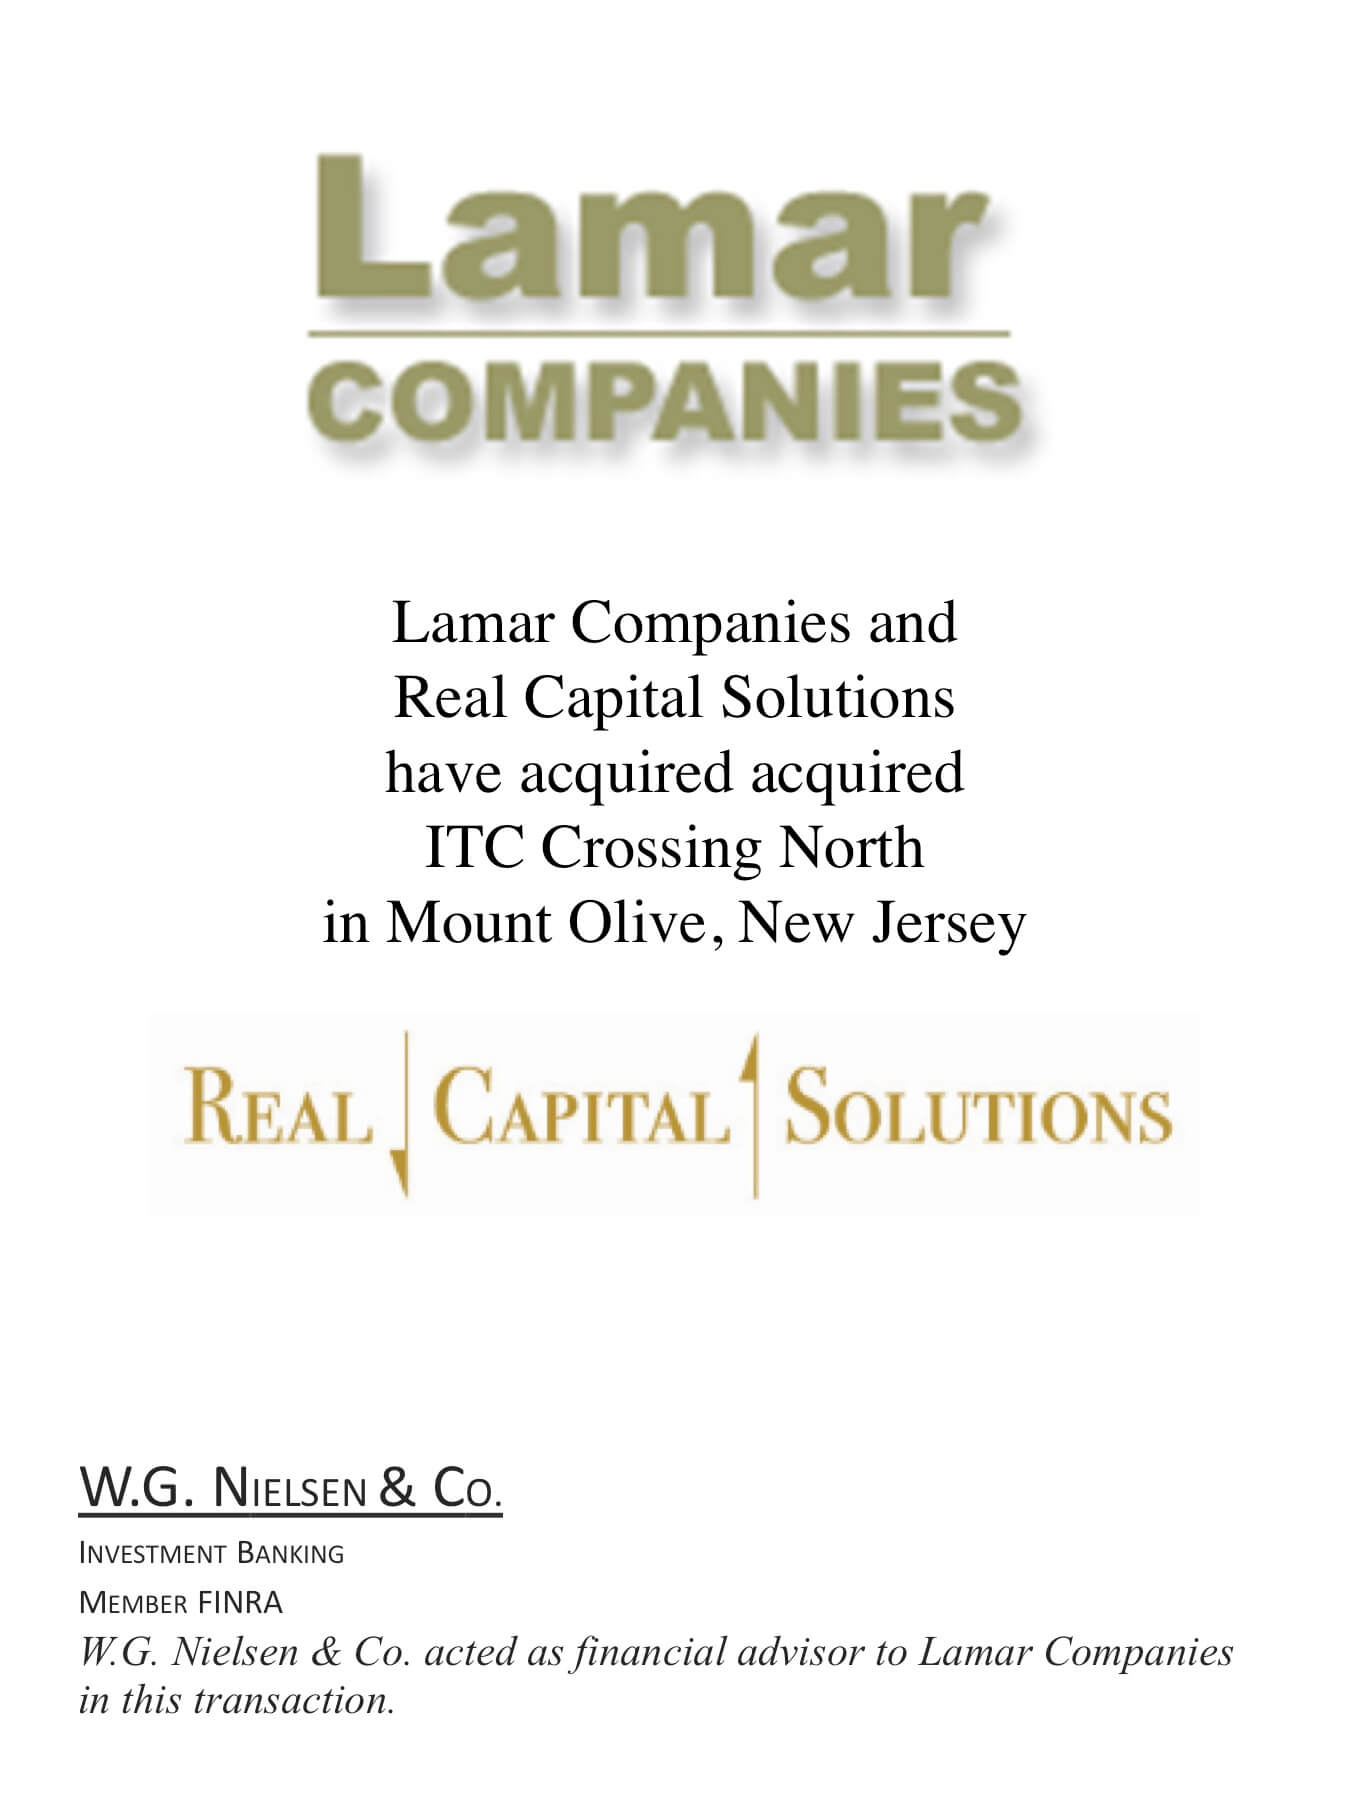 lamar companies 4 investment banking transaction